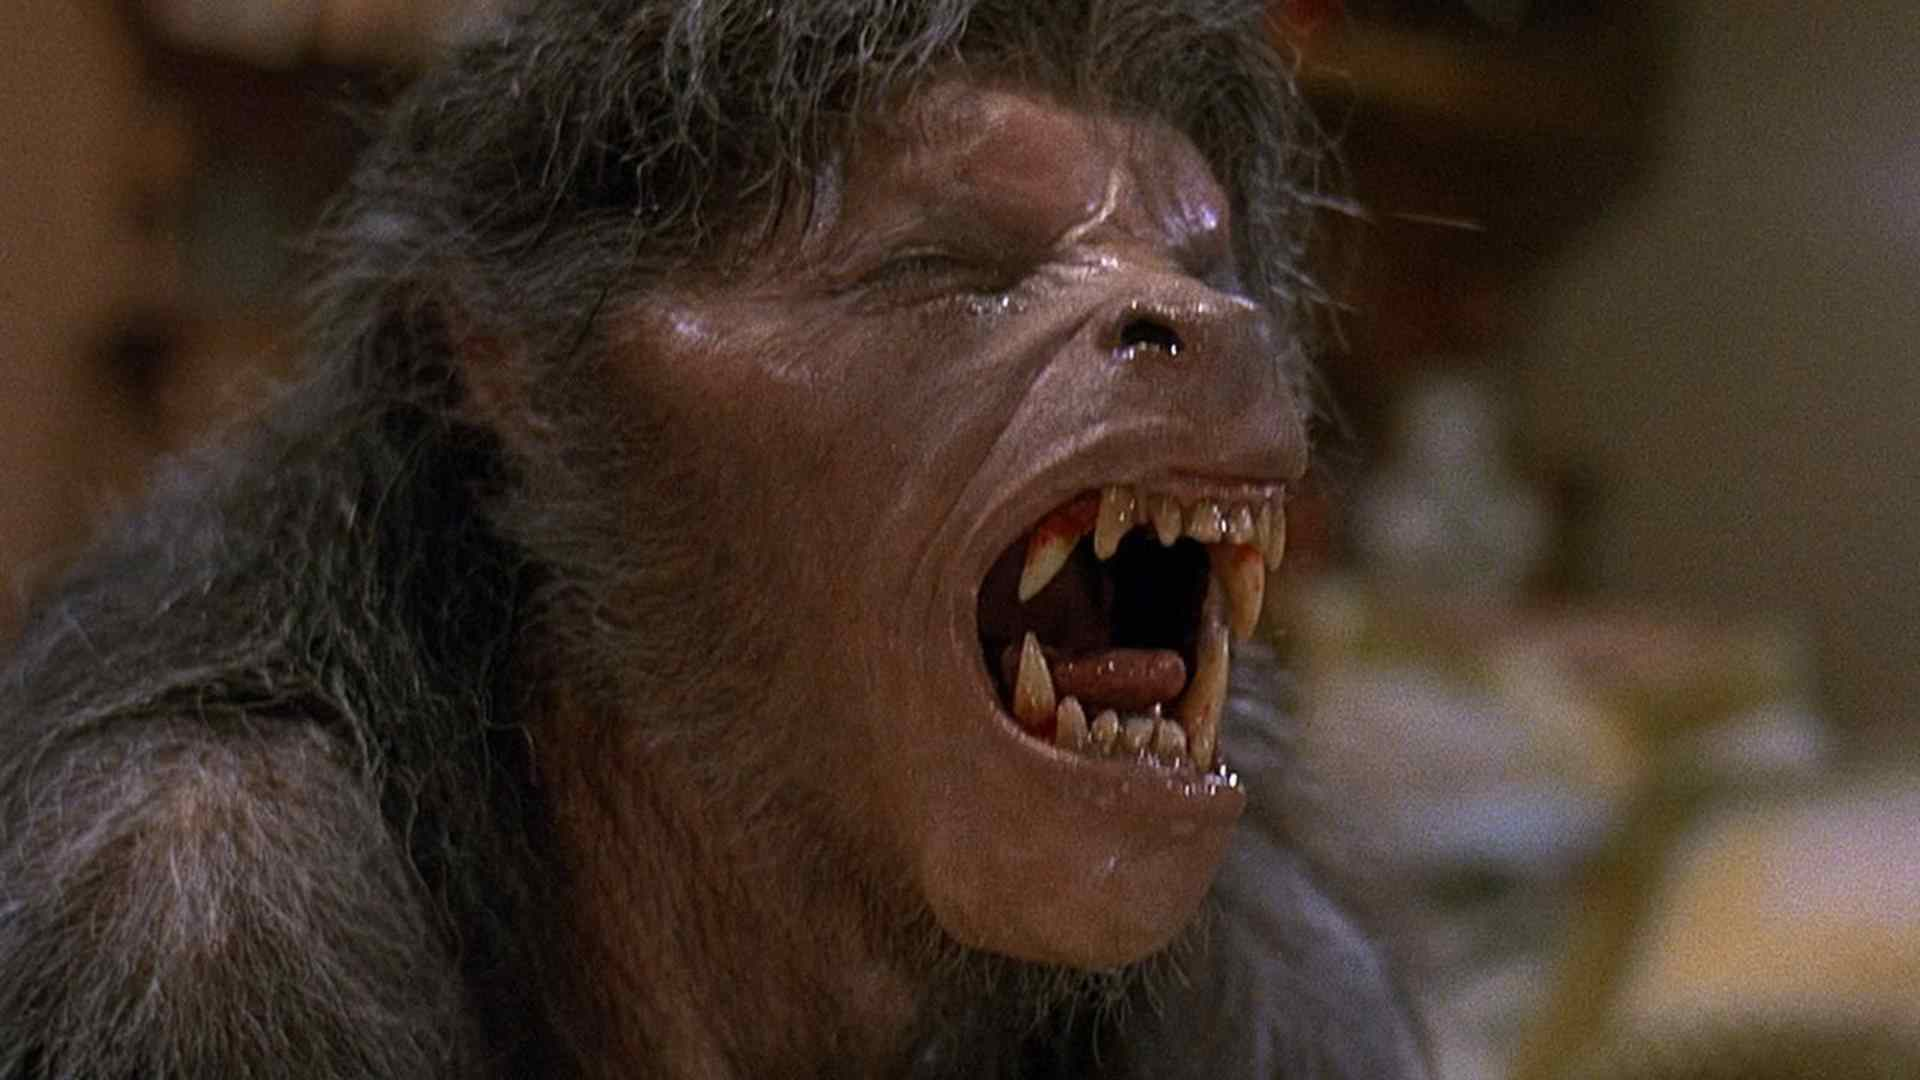 An American Werewolf in London directed by John Landis.